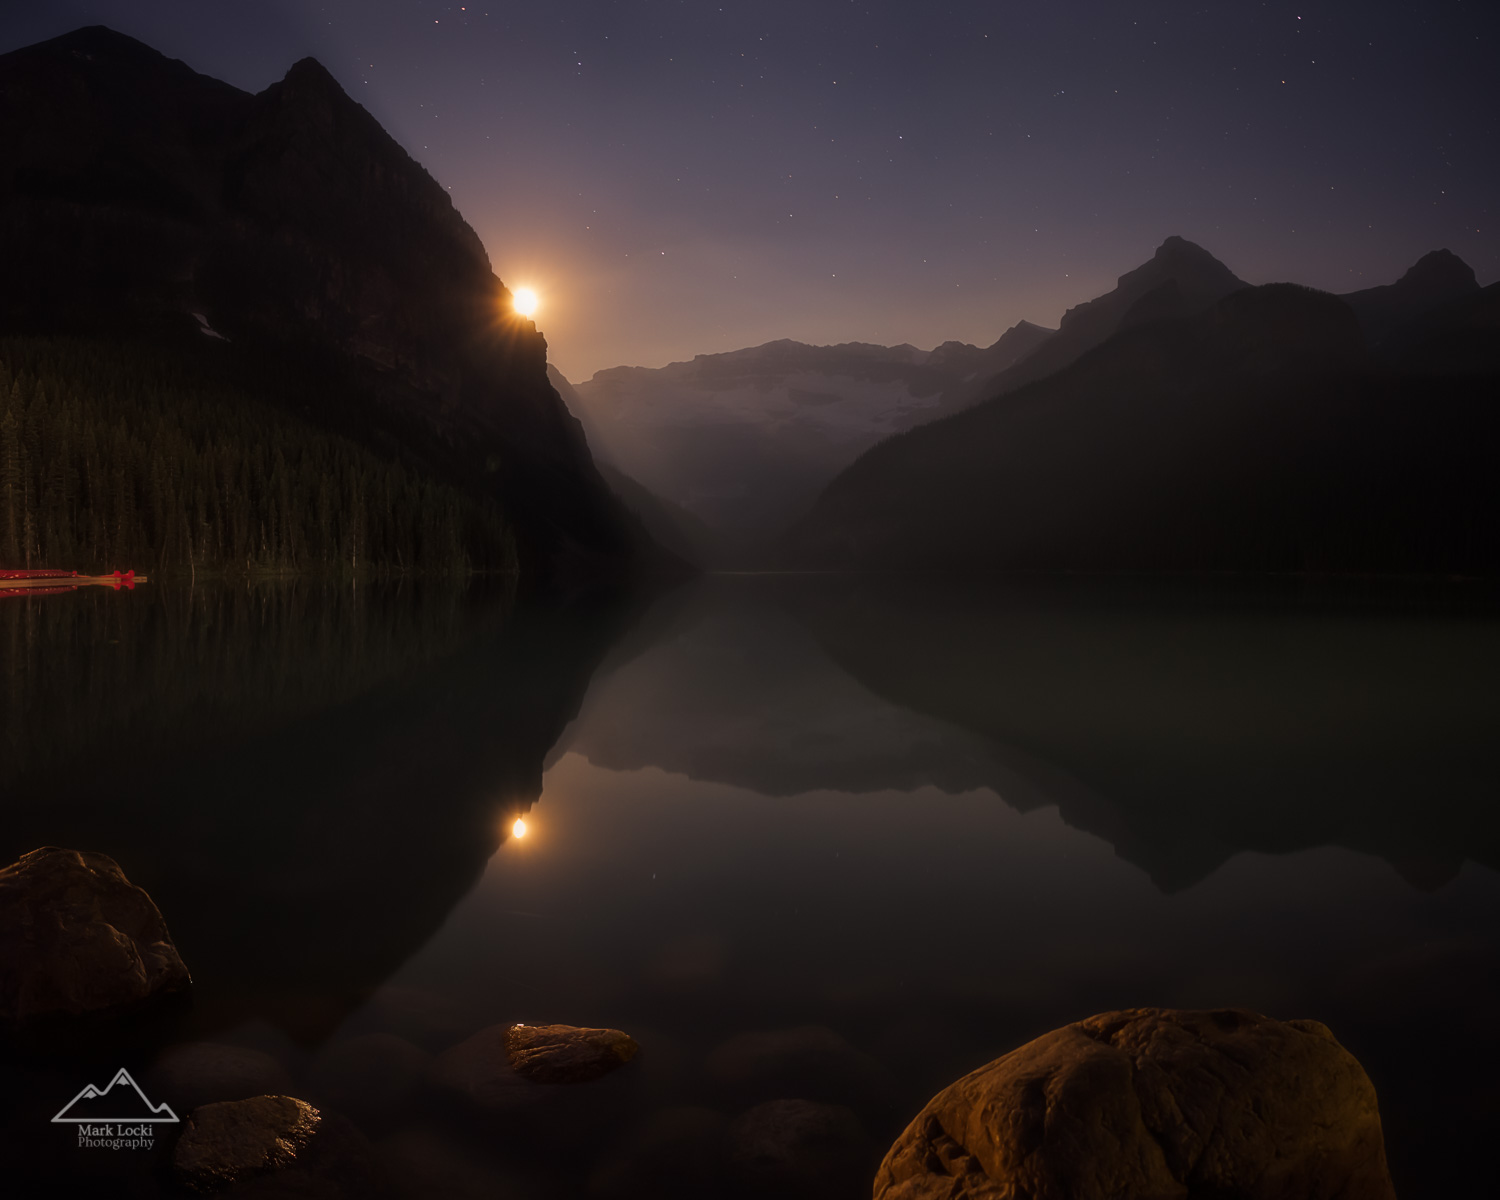 Luminous Lake Louise: I spent an evening around Lake Louise hoping to see a bit of the Milky Way, but figured the moon would probably be too bright on that night. Not knowing what I would come up with, I went out for some night photography anyways. After spending an hour or two around the Lake, the Moon finally peaked out from behind The Mitre. A little bit of smoke from distant wildfires provided a bit of a unique glow. Despite no Milky Way, I was really happy with how this photo turned out!